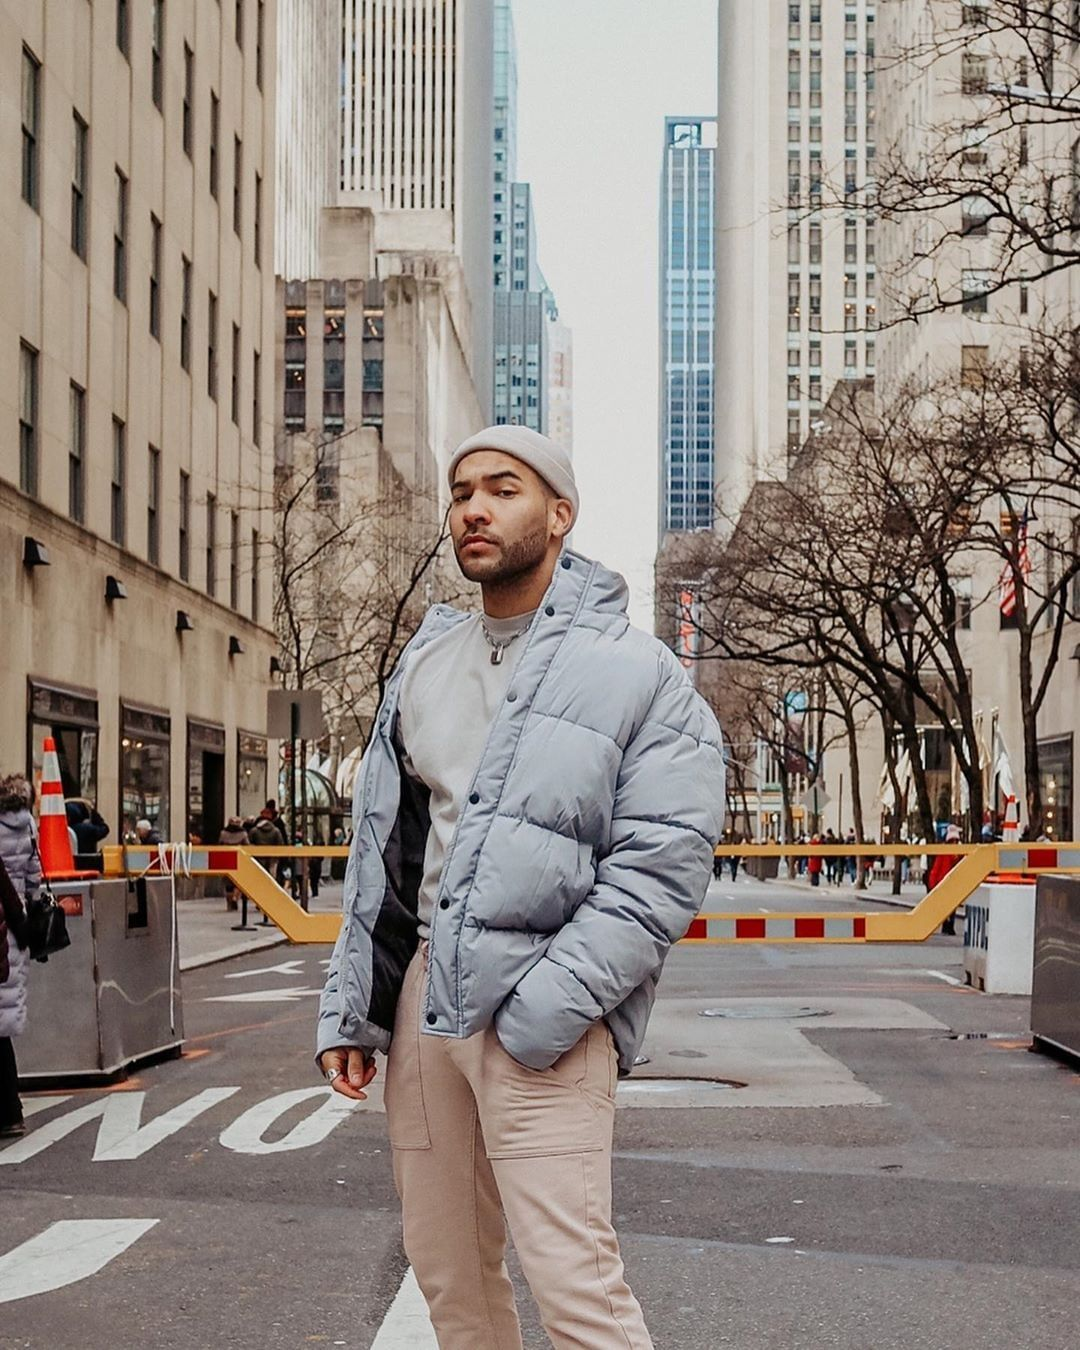 Of Course I M Not Over Tonals Cyisthelimit Asos Design Sustainable Puffer Jacket In Grey With Funnel Neck 15 Puffer Jackets Winter Jackets Asos Designs [ 1350 x 1080 Pixel ]